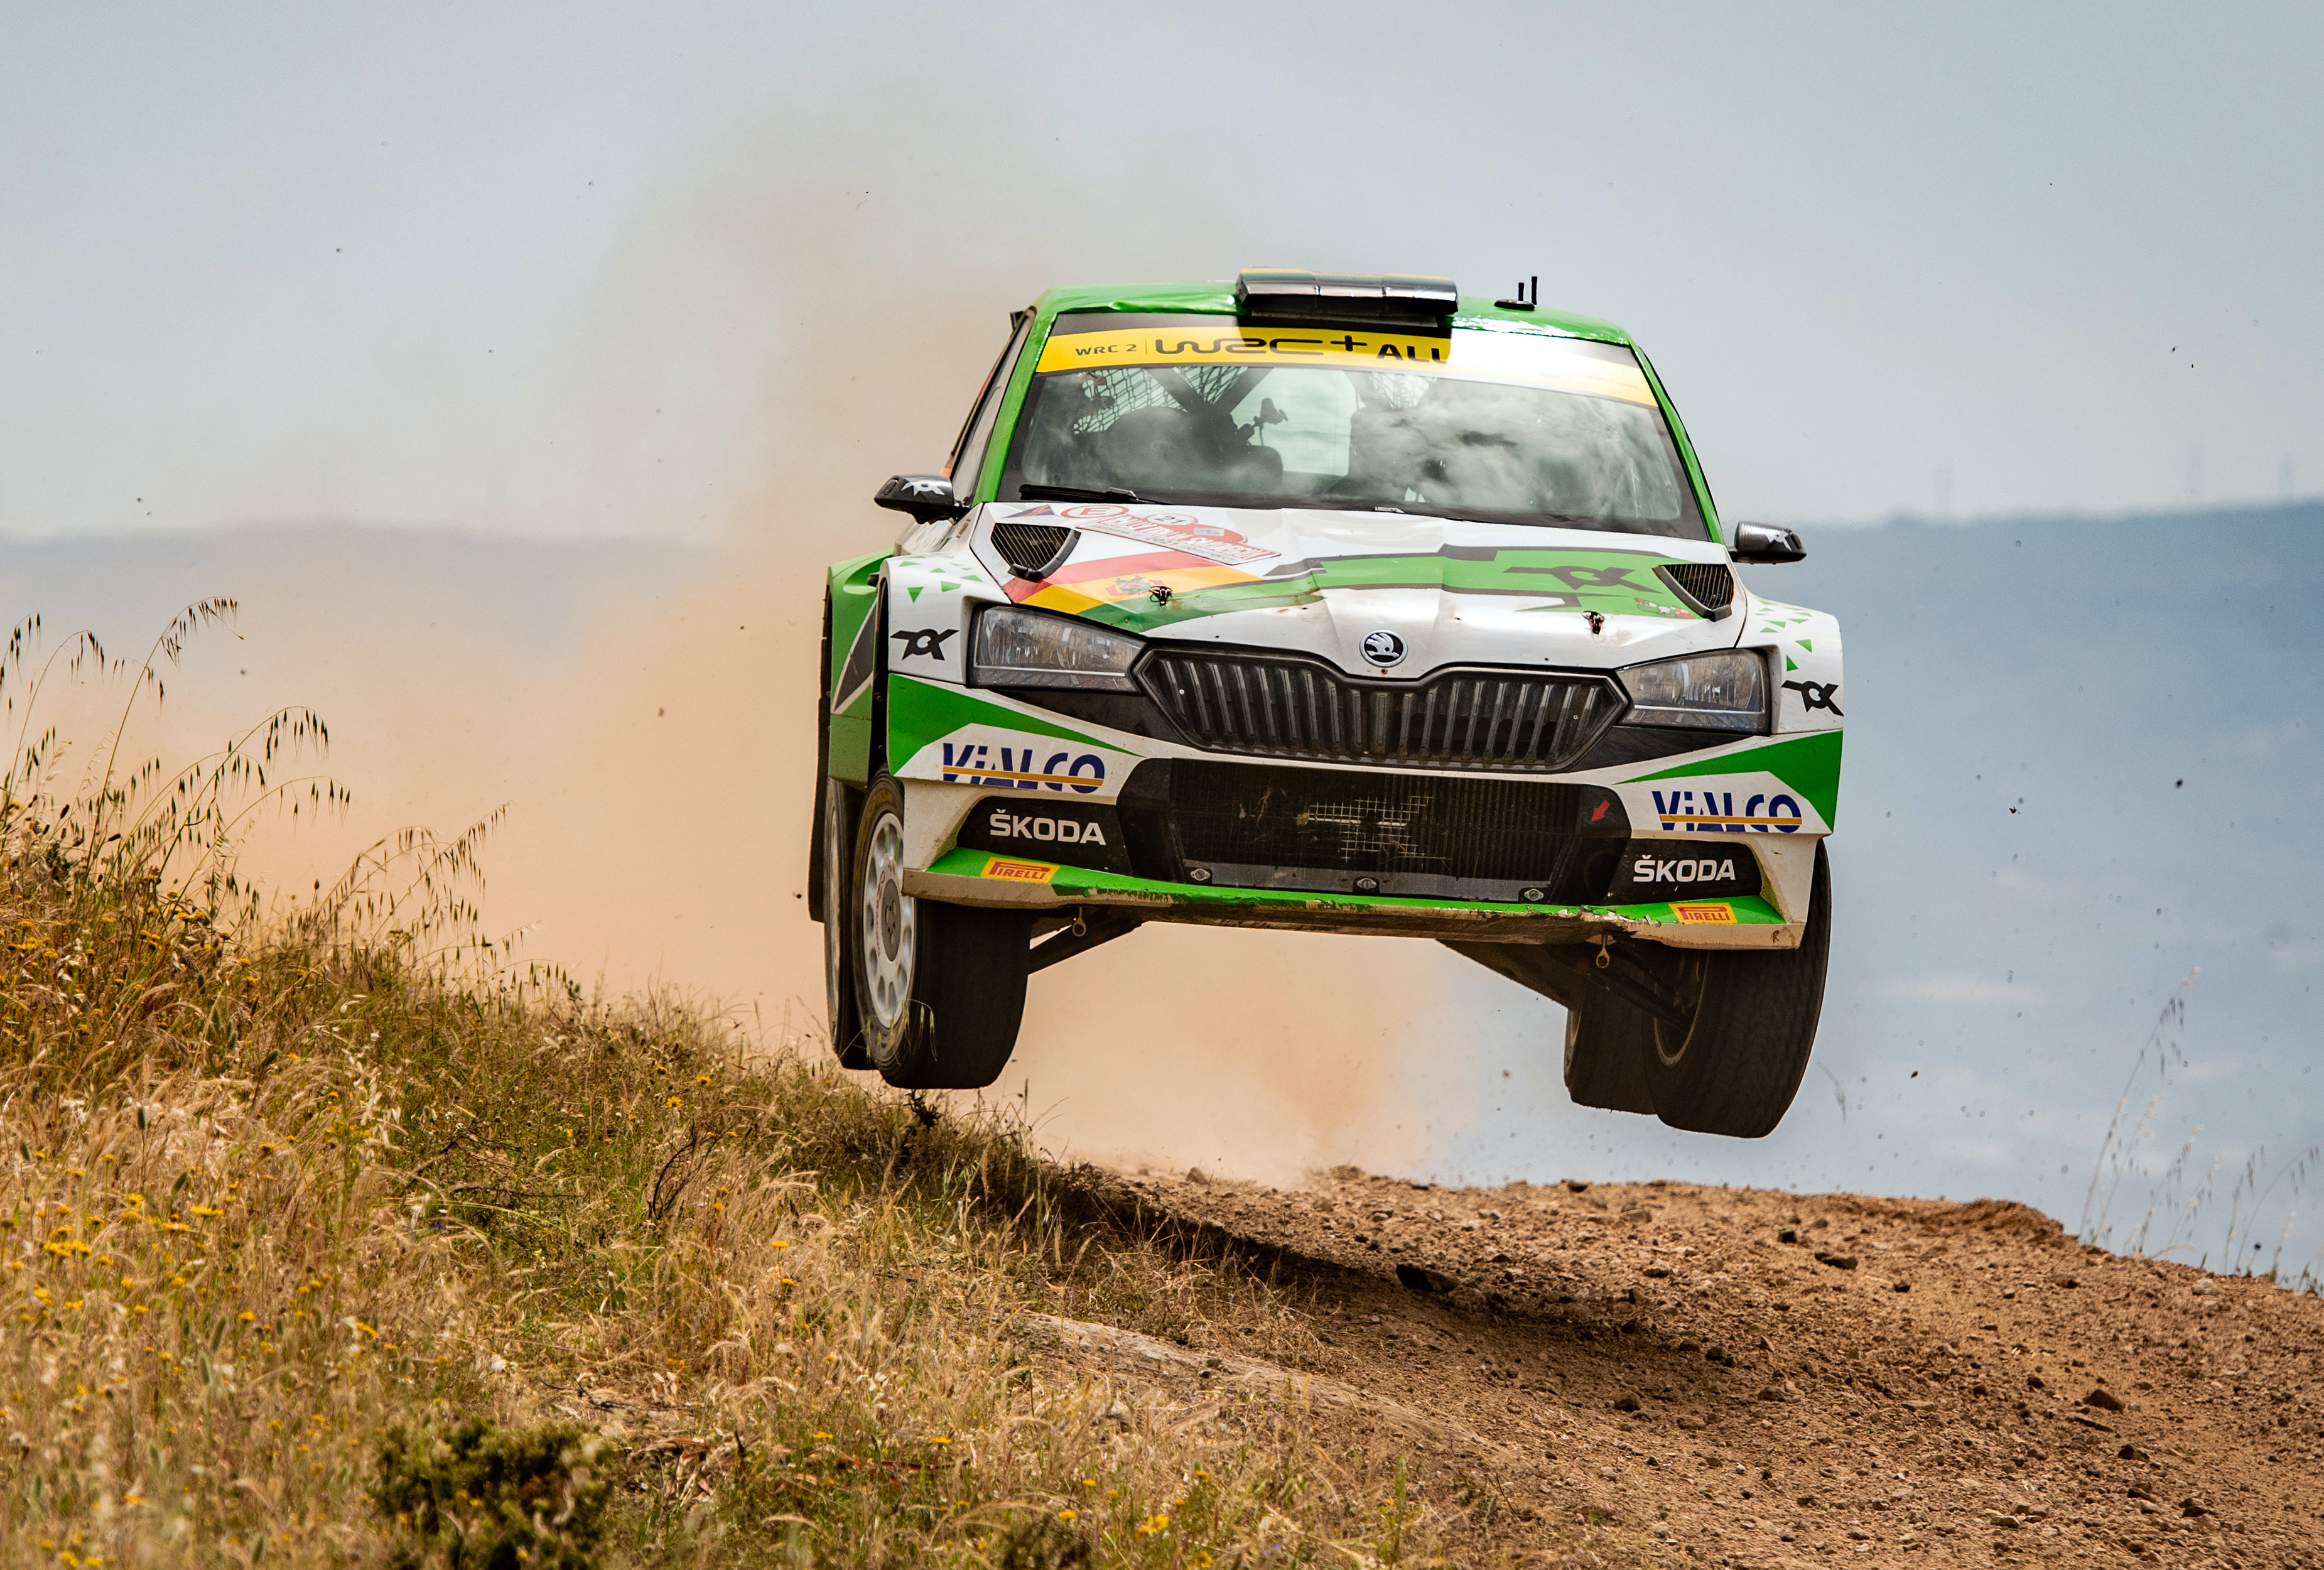 Rally Estonia: SKODA driver Andreas Mikkelsen wants to strengthen lead in WRC2 category - Image 1